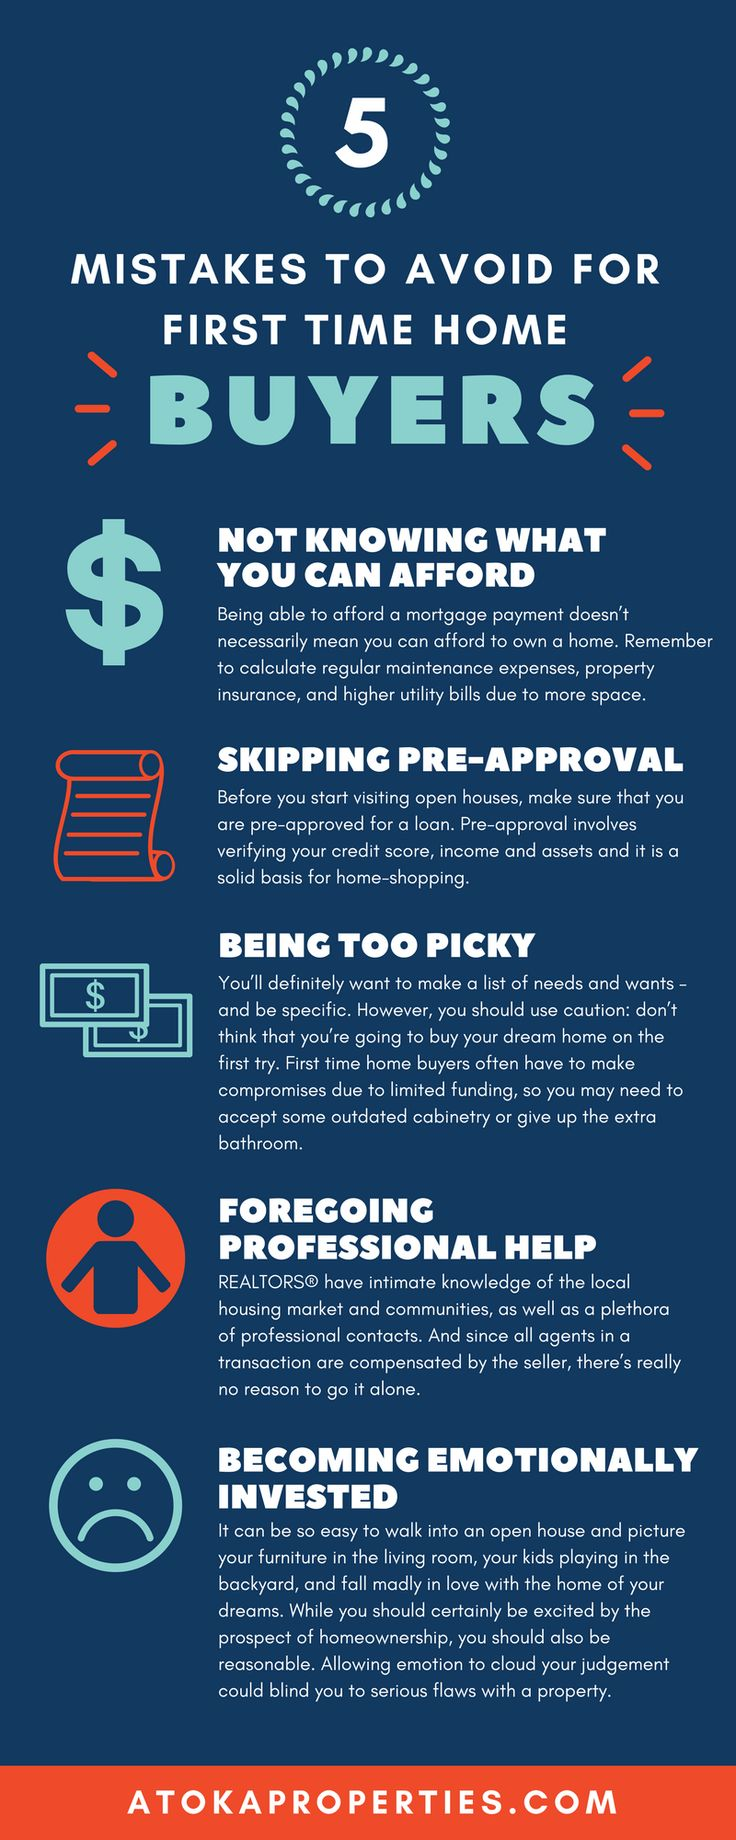 Buying a home can be both exhilarating and terrifying. Make sure to avoid these First Time Home Buyer pitfalls. | atokaproperties.com